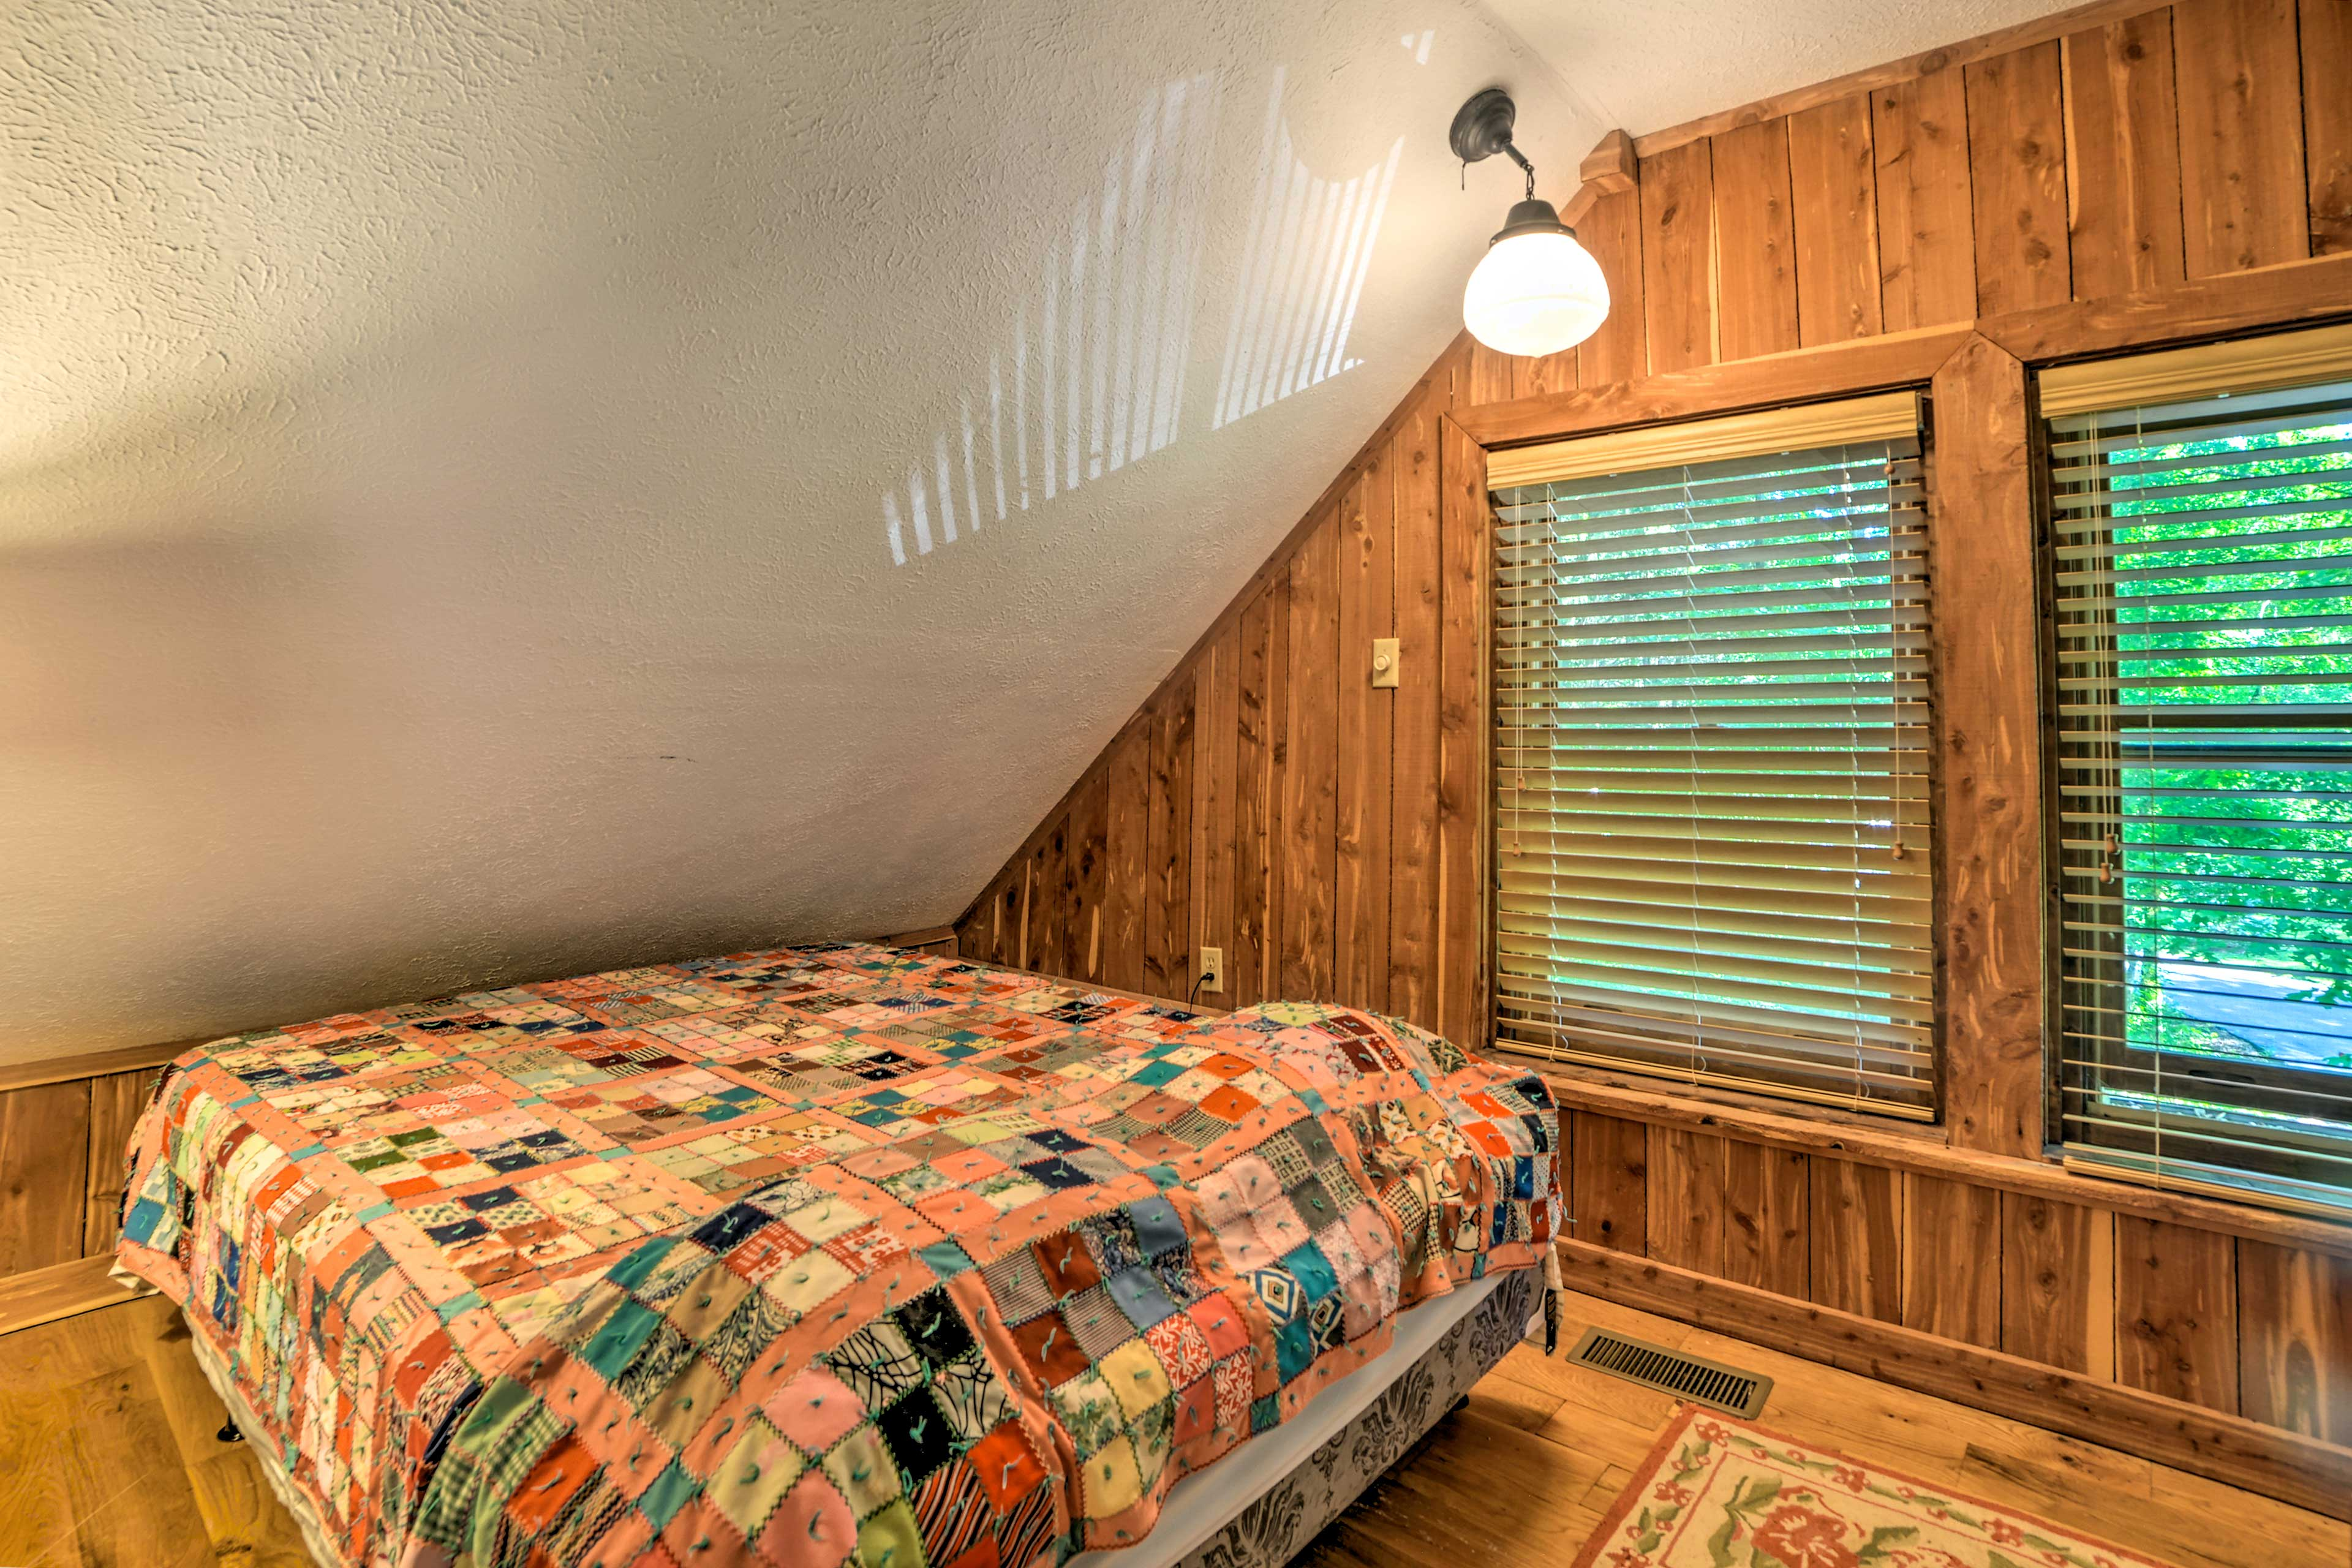 Two guests can share the comfort of this queen-sized bed.